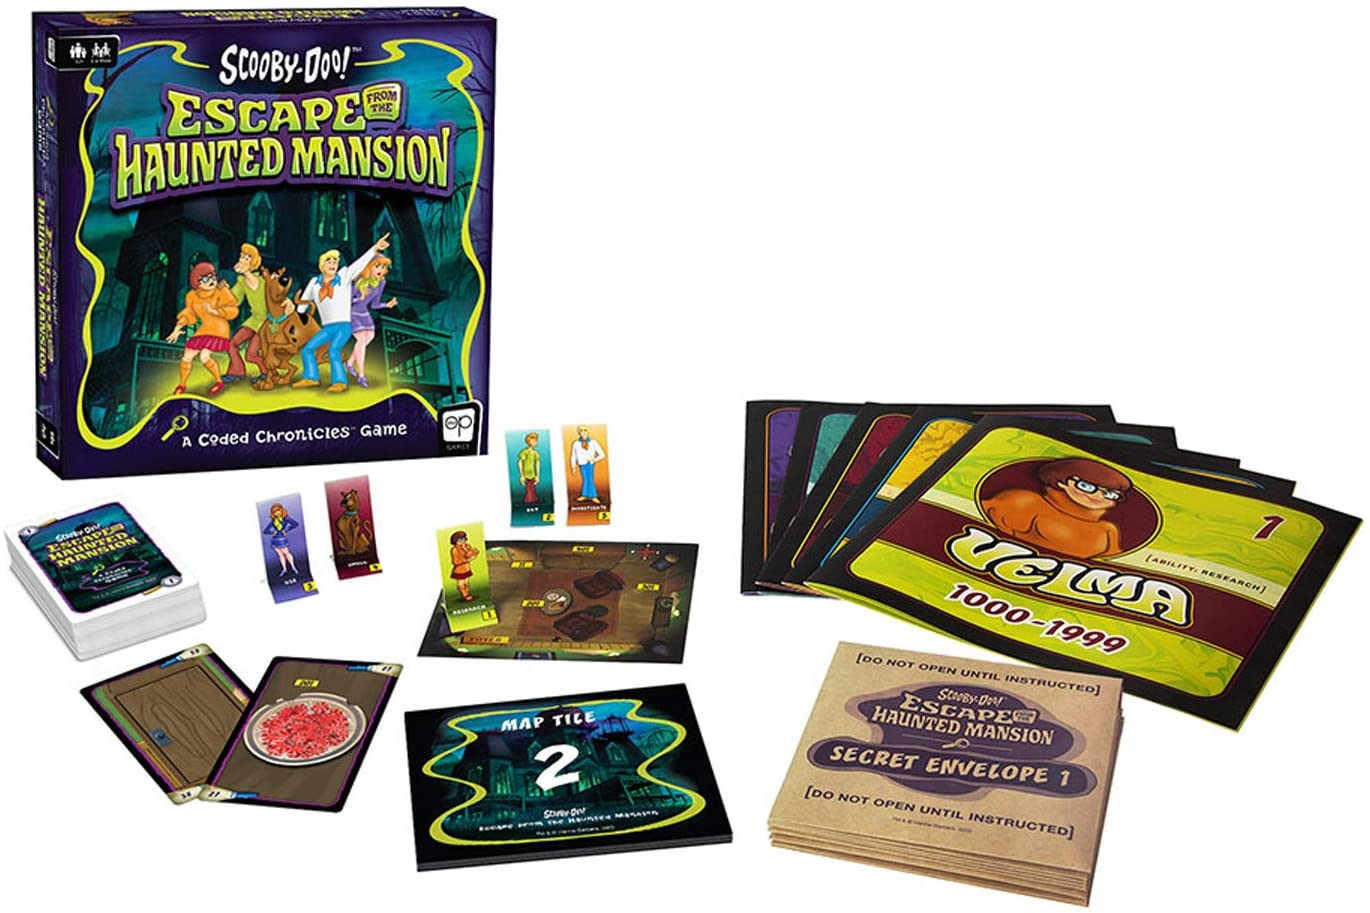 Scooby-Doo Escape from The Haunted Mansion kit